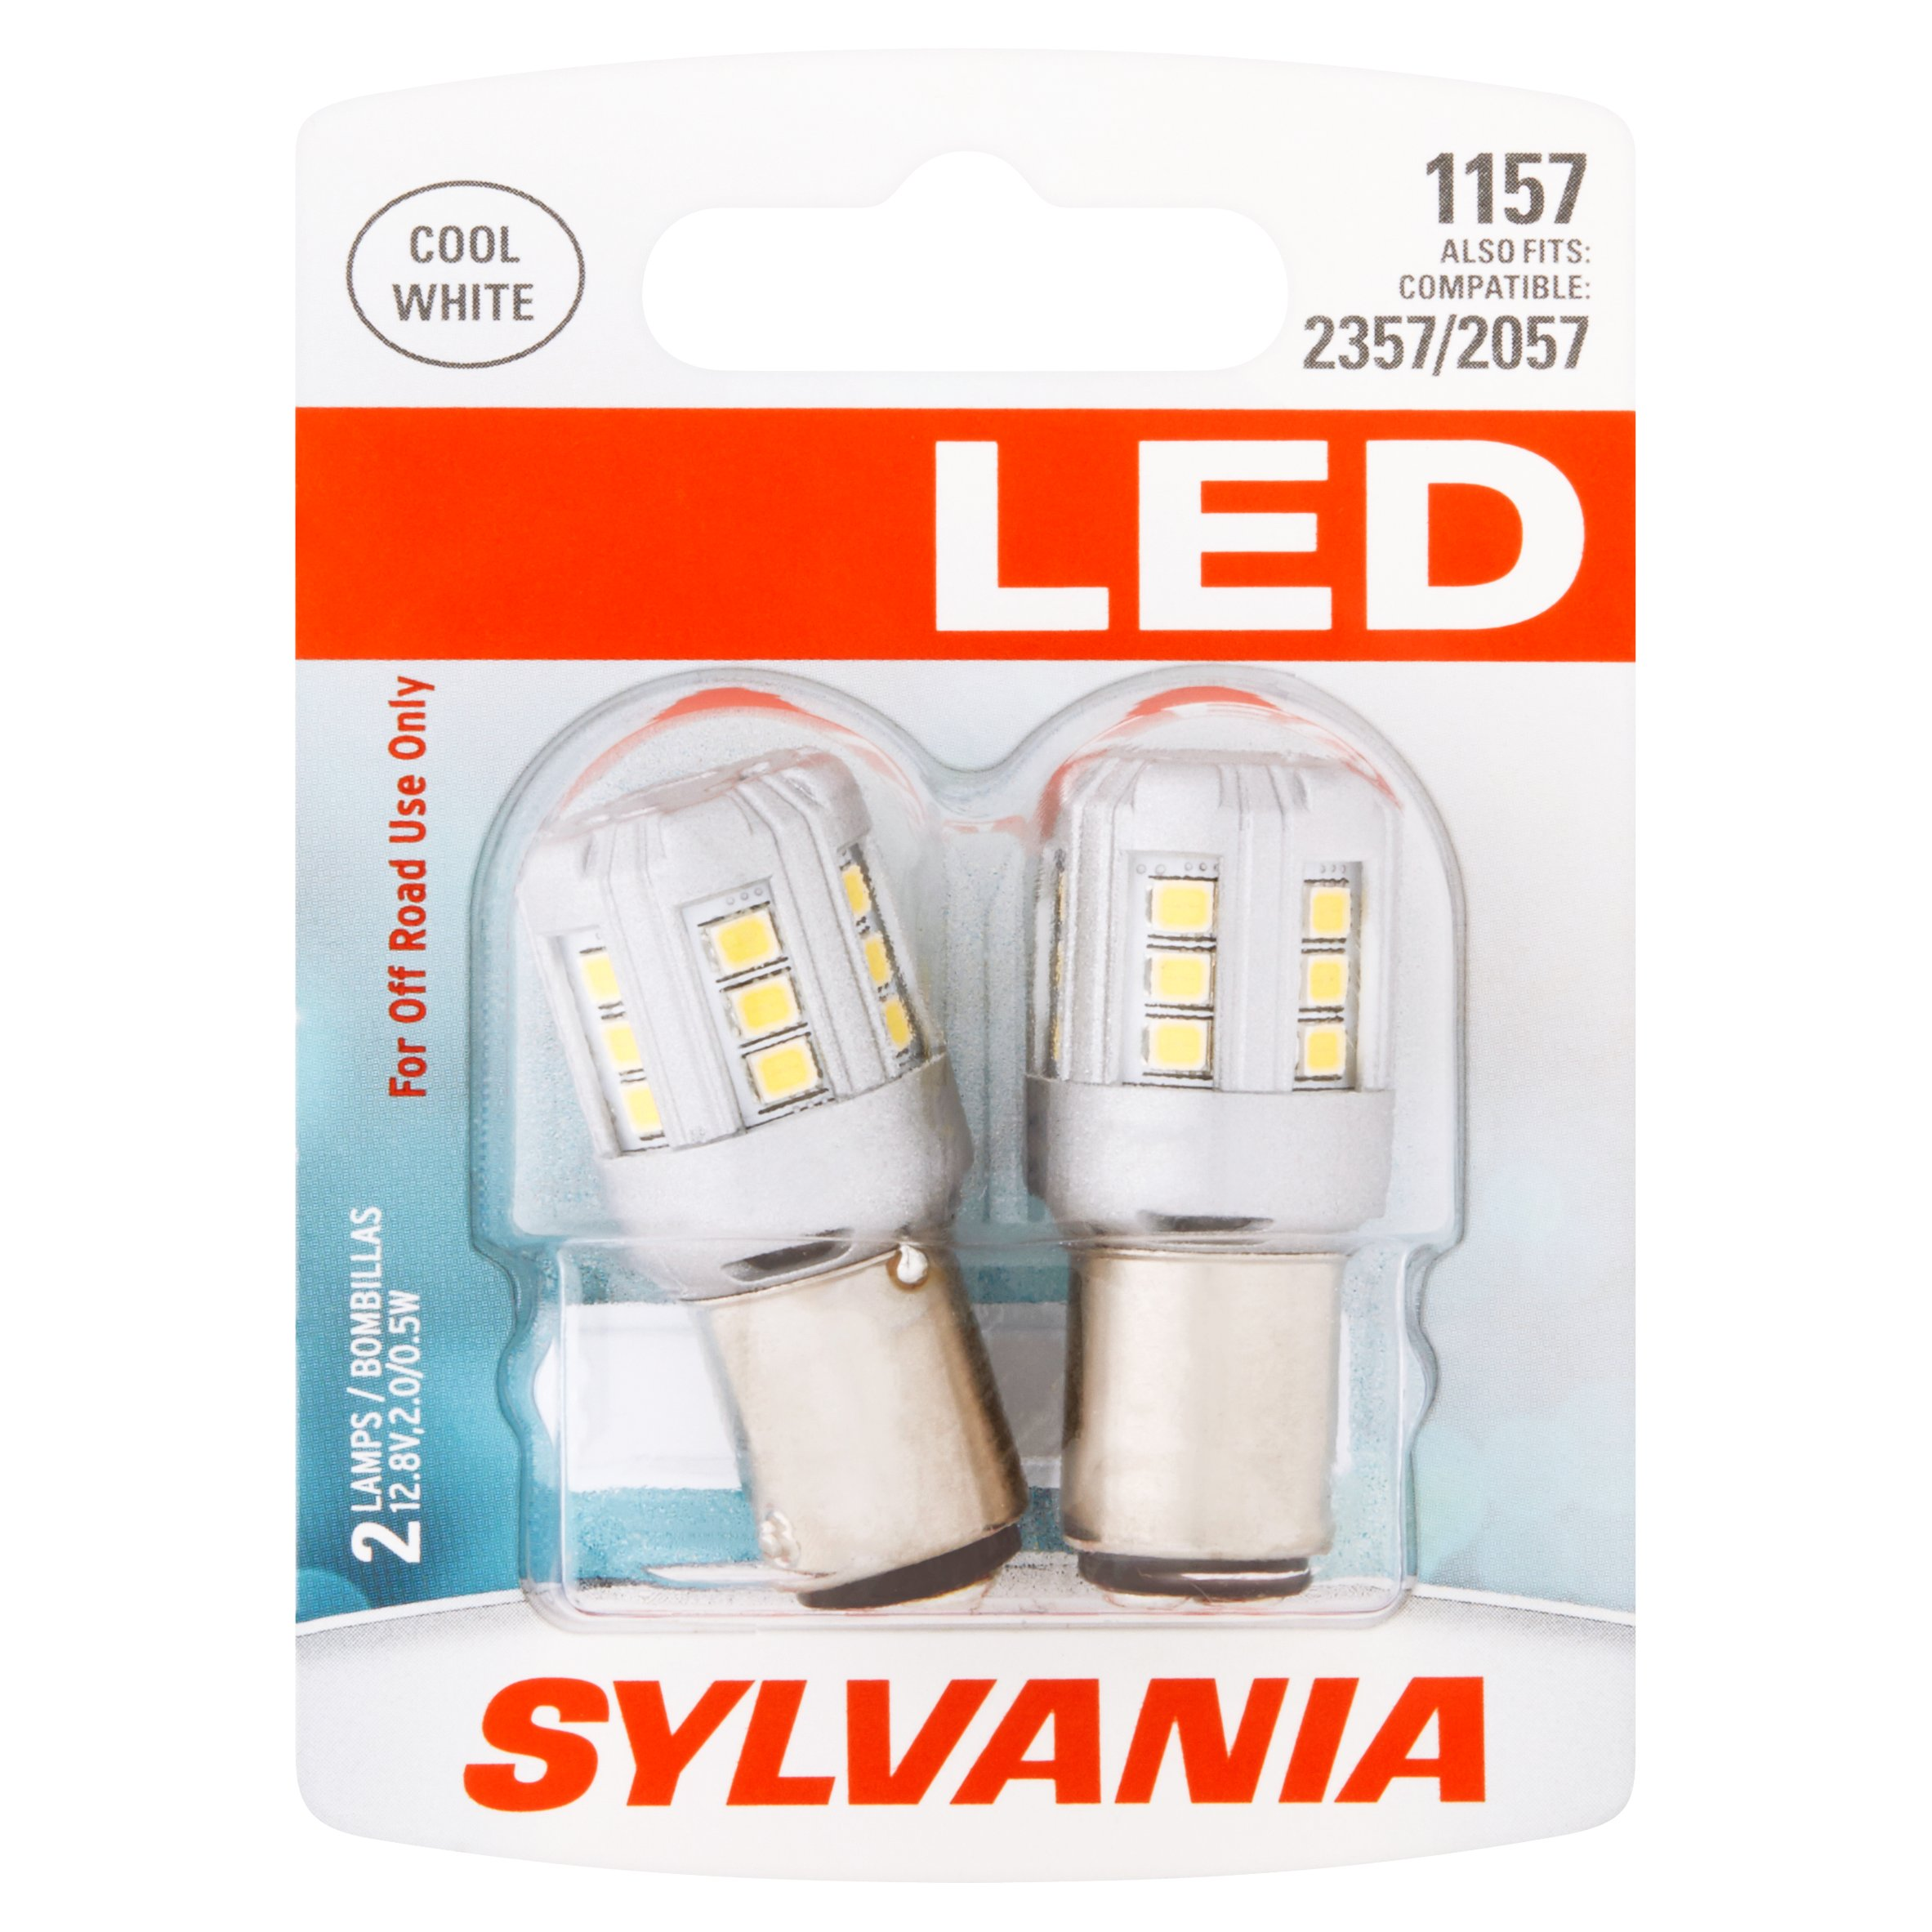 Sylvania LED 1157 12.8V 2.0/0.5W Cool White Lamps, 2 count